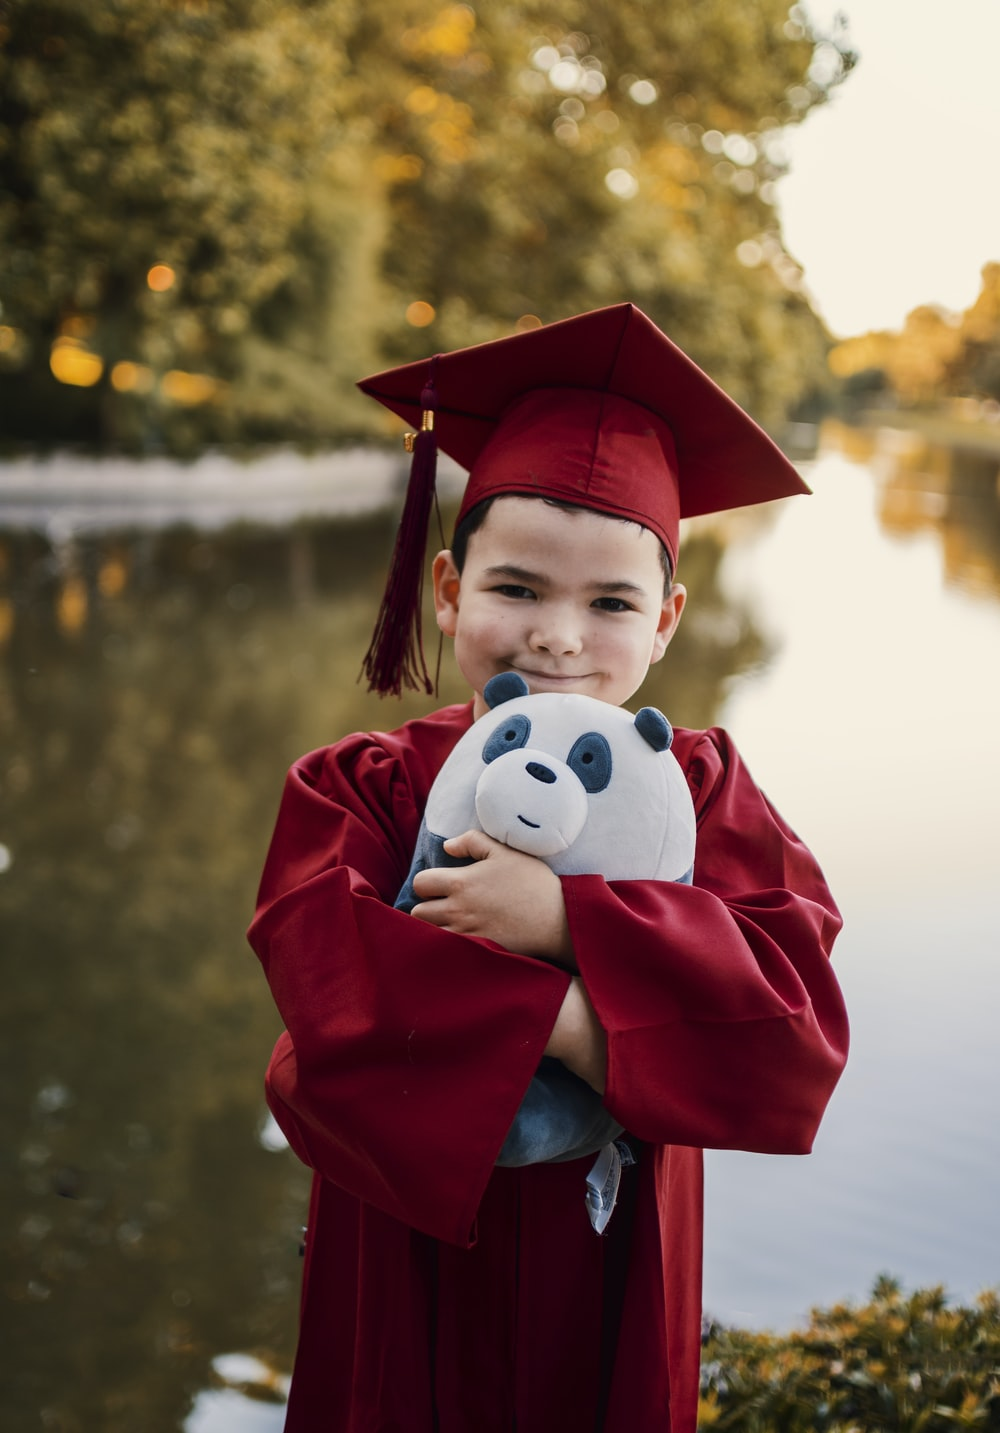 boy in red academic dress with white and black panda plush toy